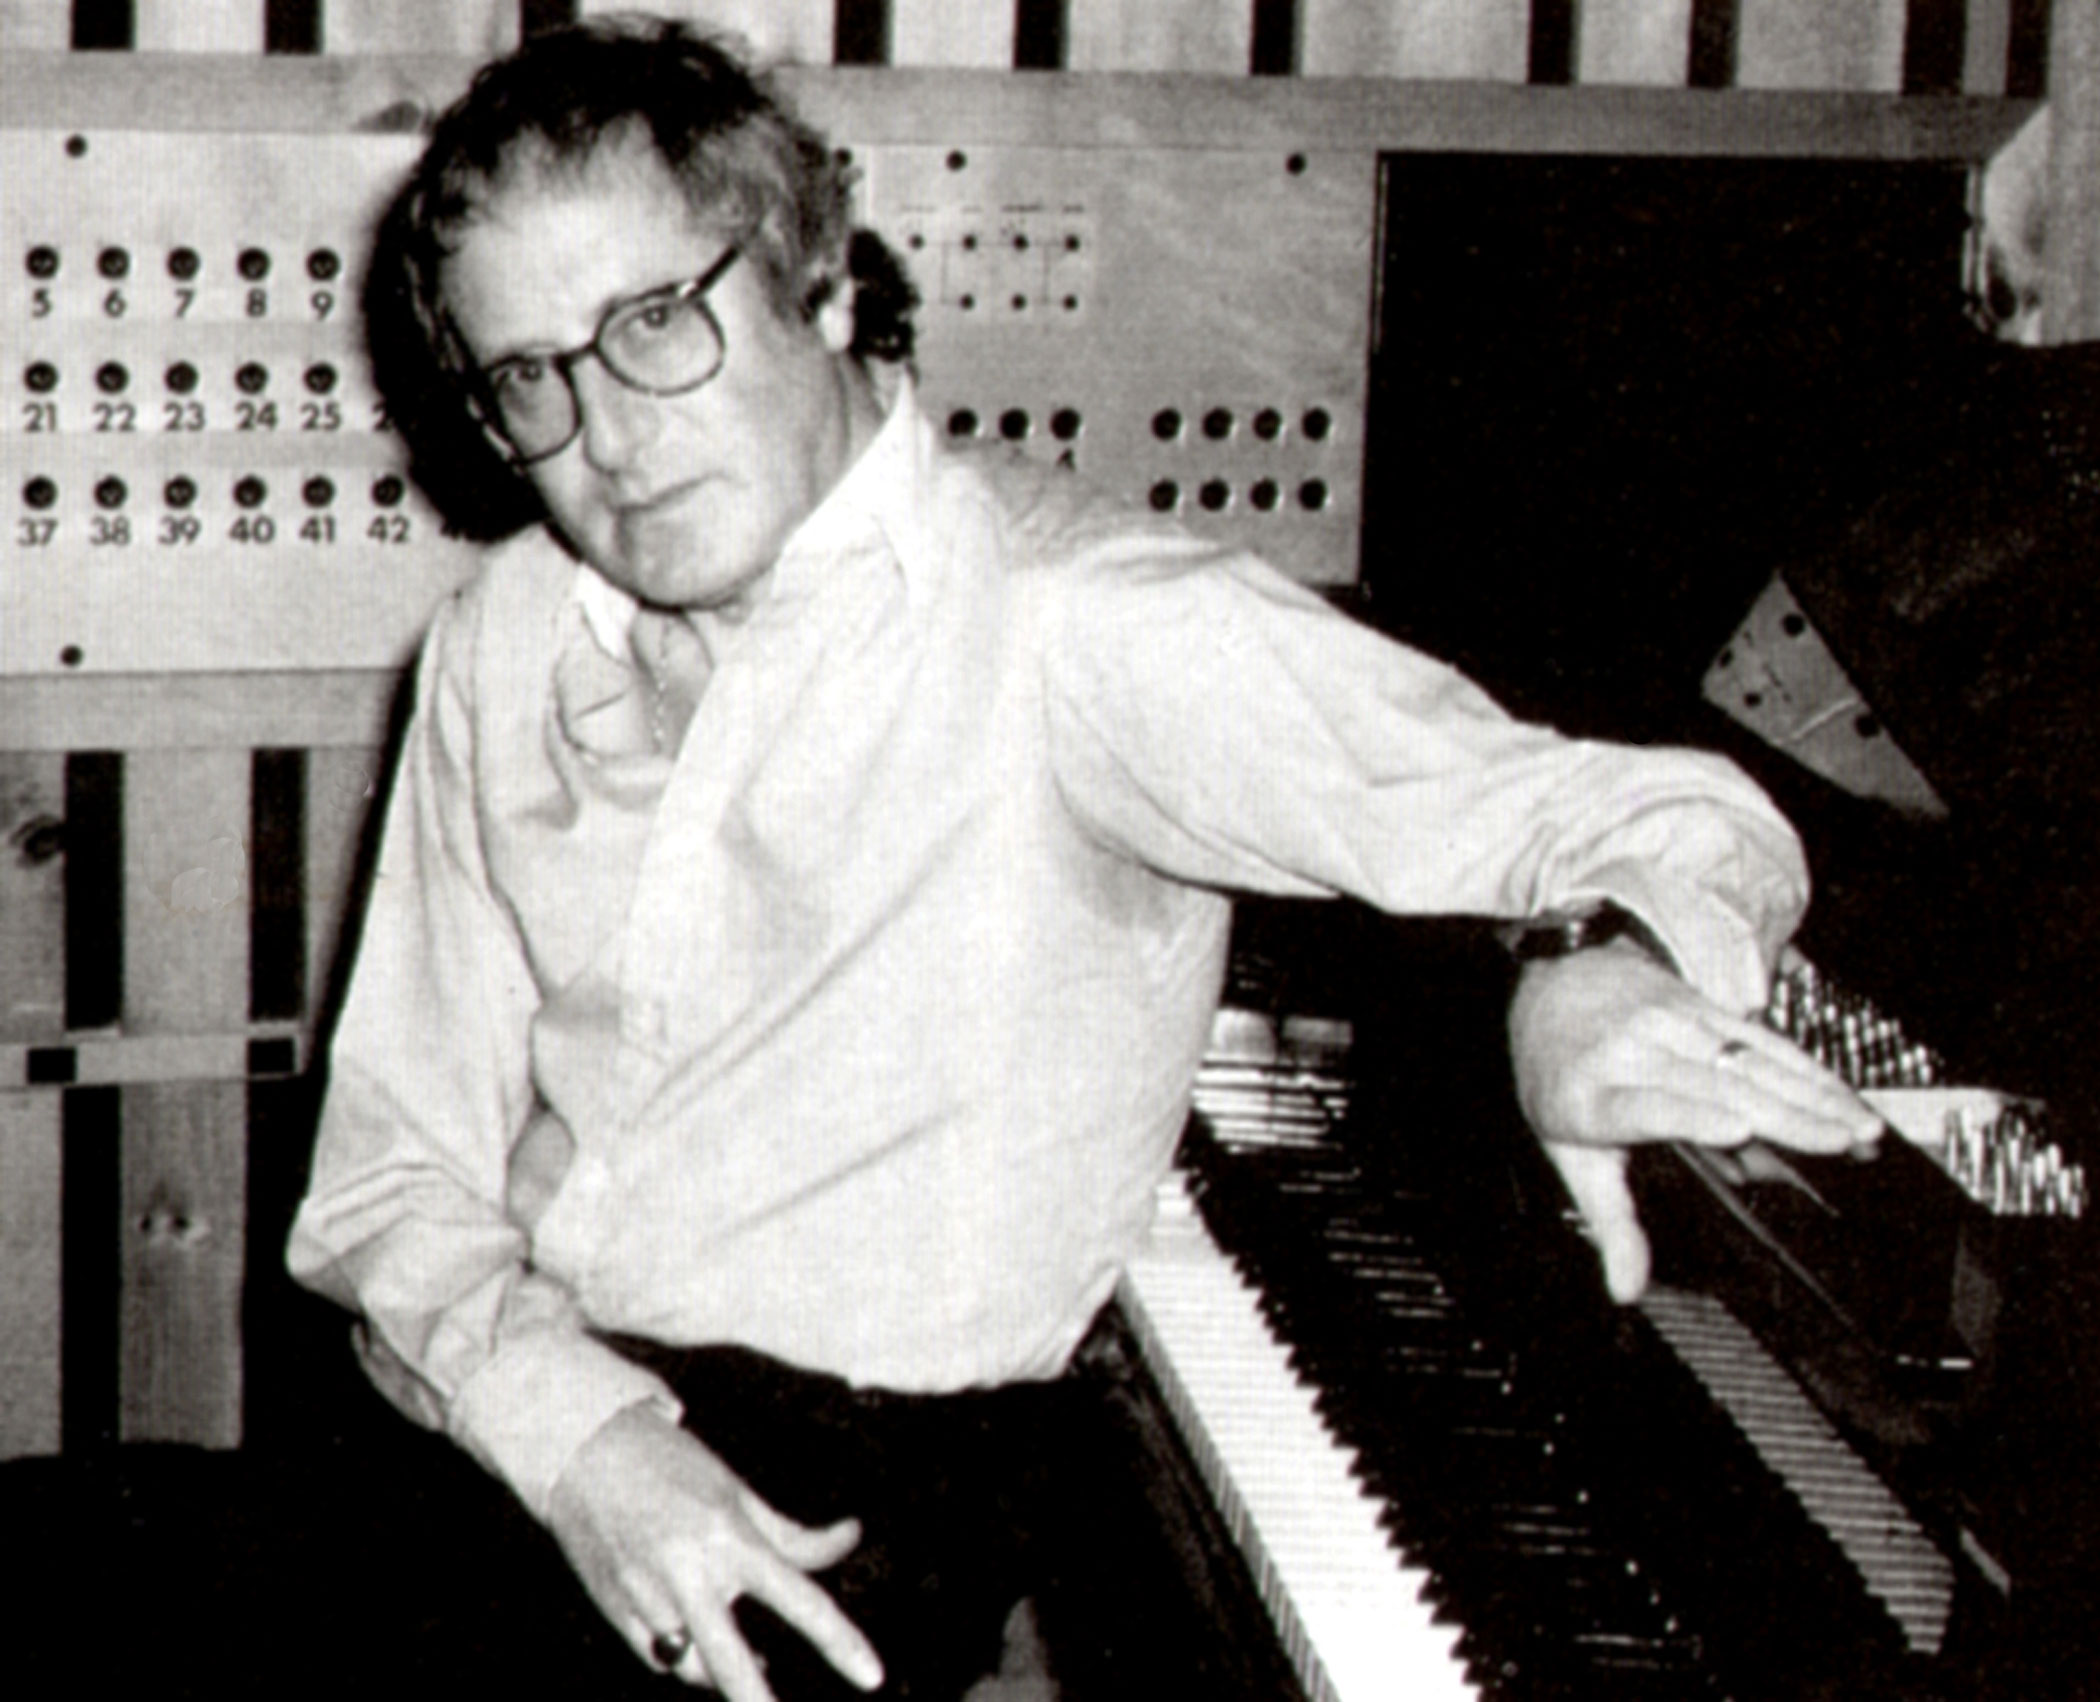 <b>John Barry</b> composed the scores many of the earlier Bond films.